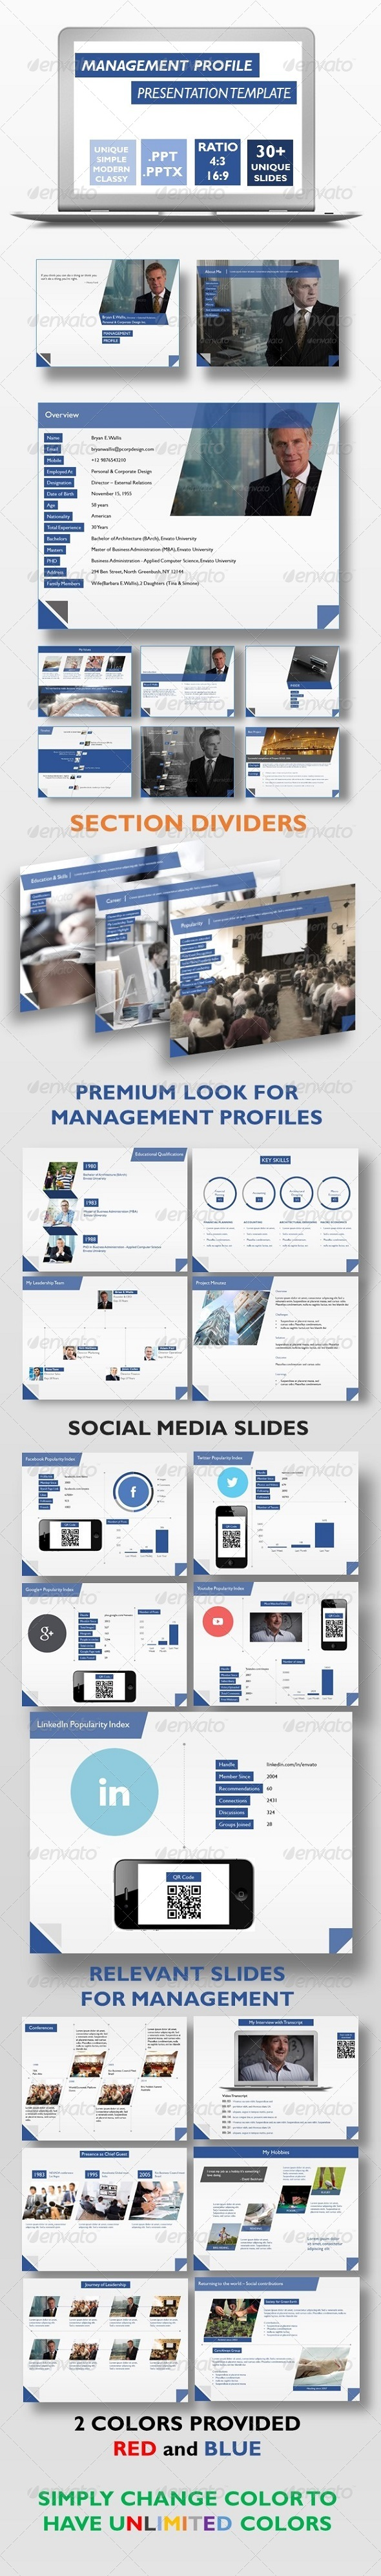 GraphicRiver Management Profile Presentation Template 8119290